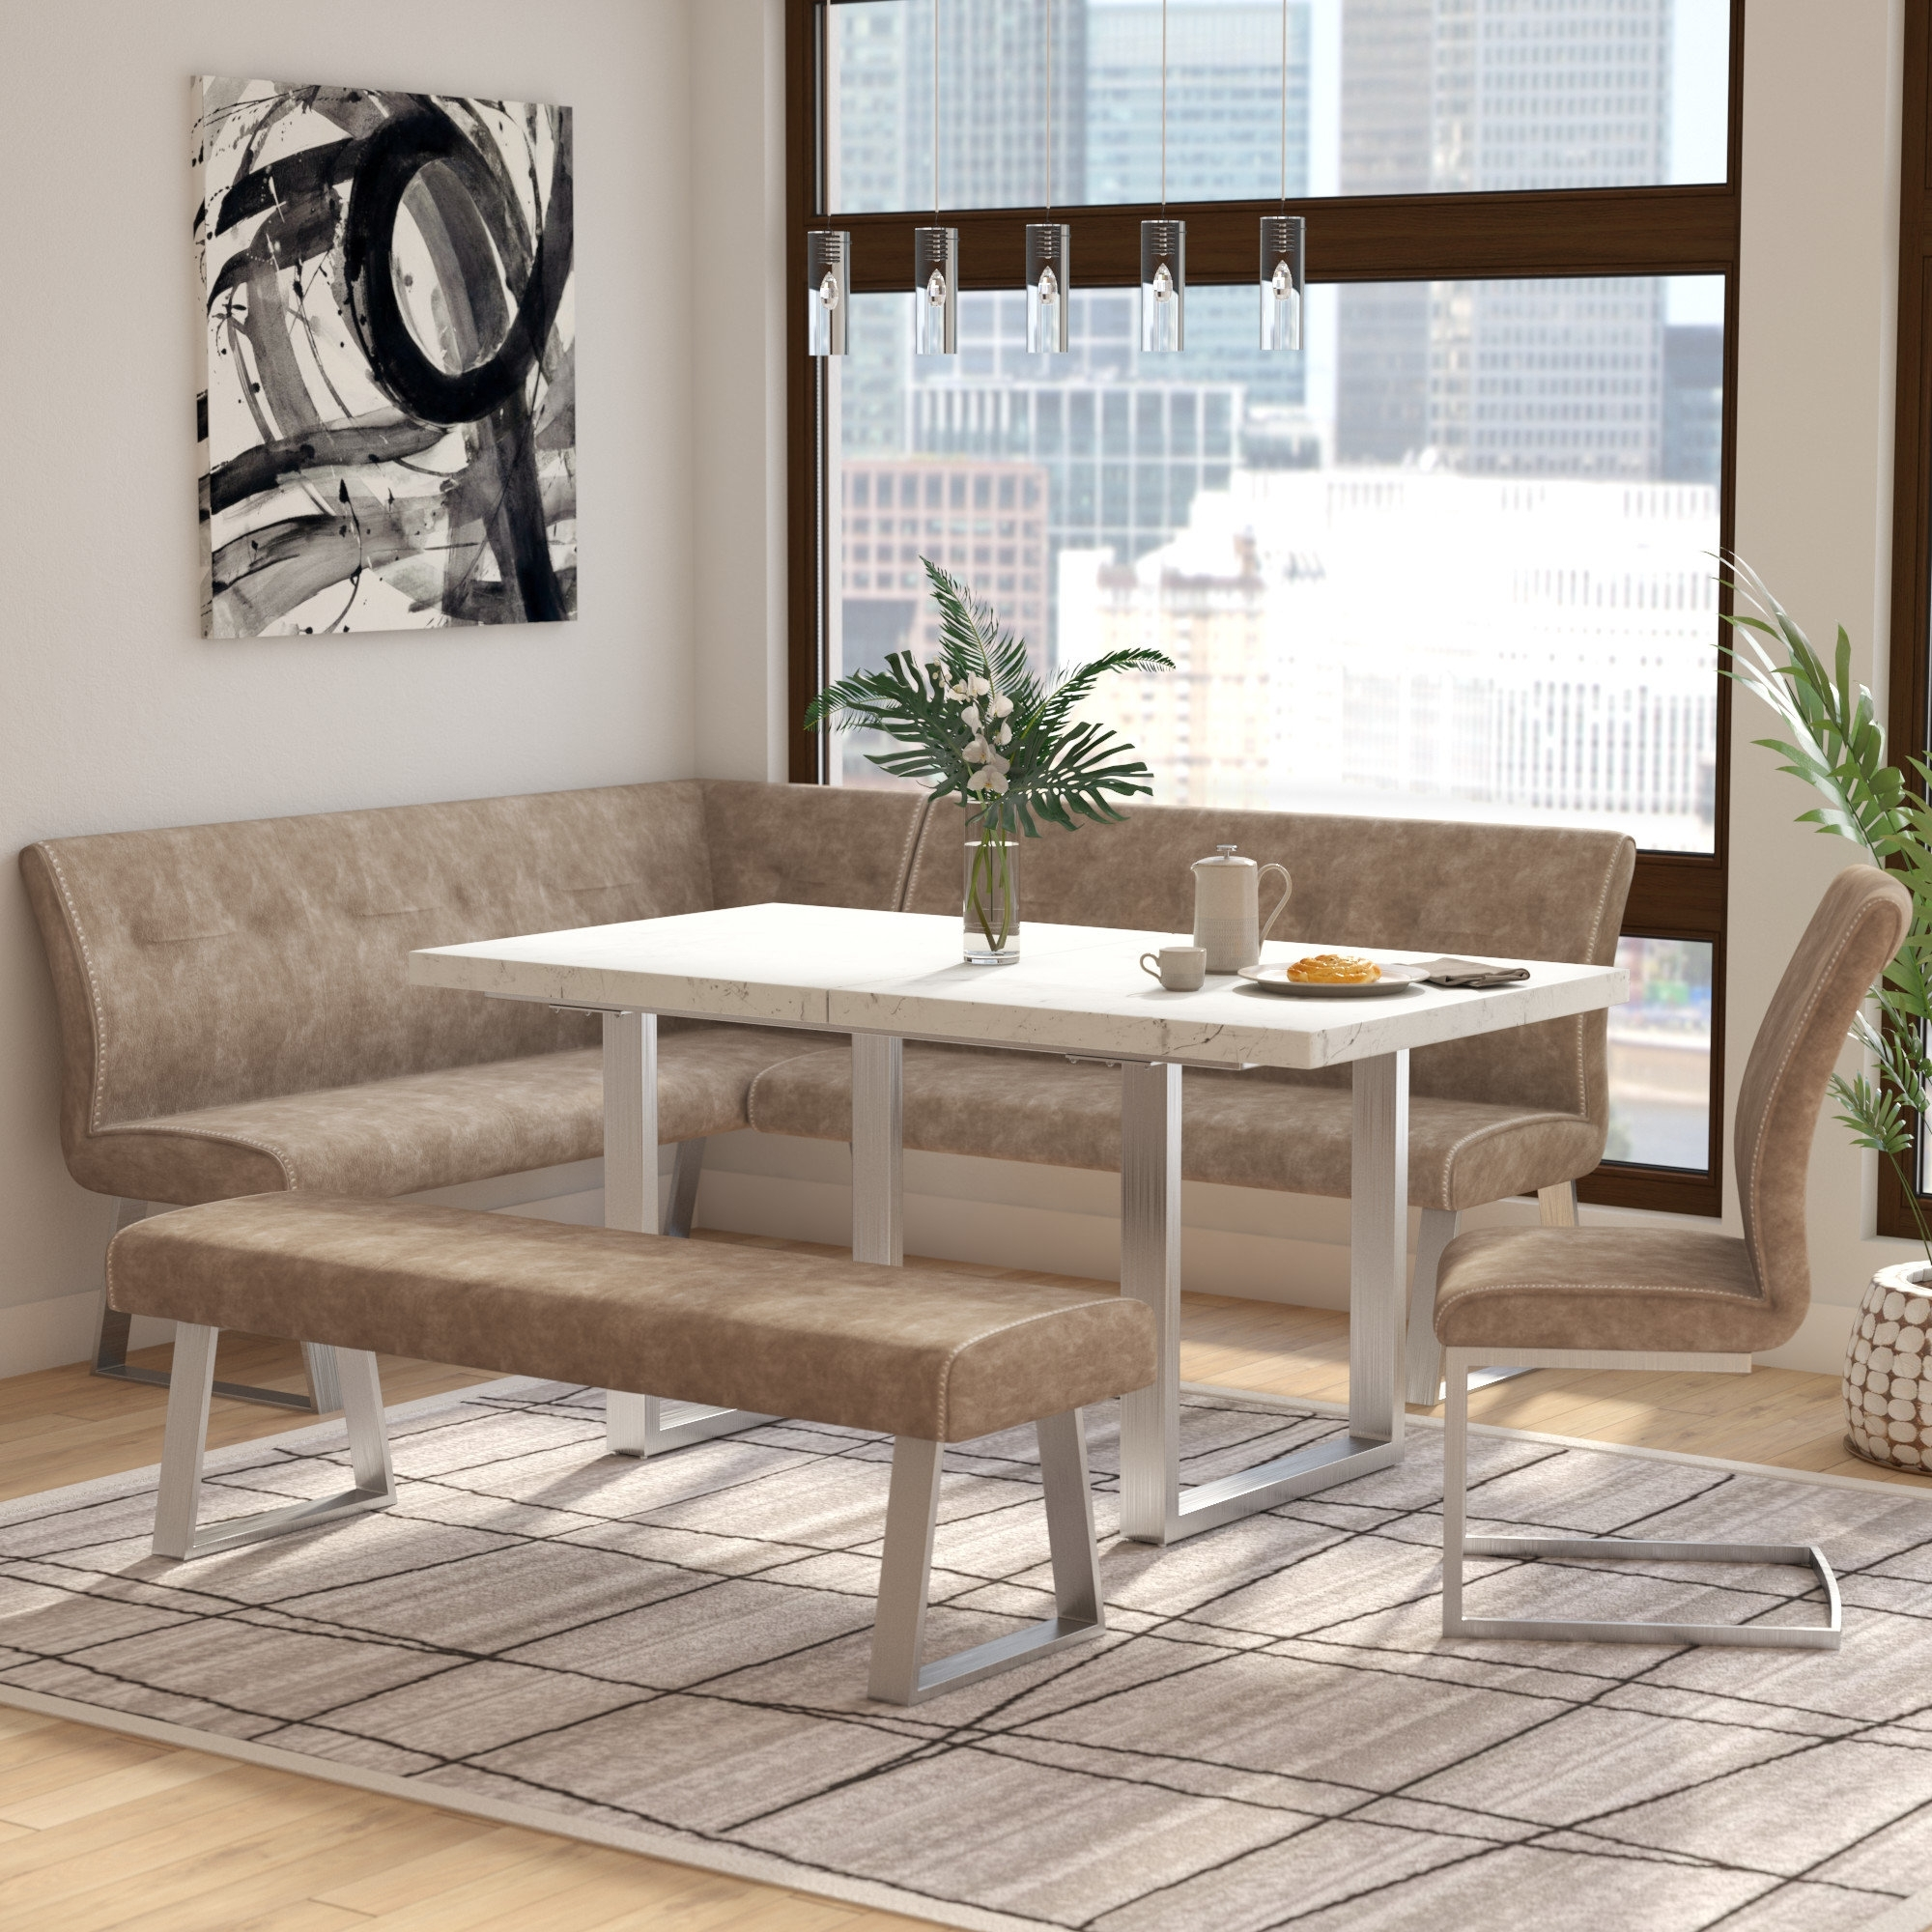 Wayfair Intended For Logan 6 Piece Dining Sets (View 24 of 25)